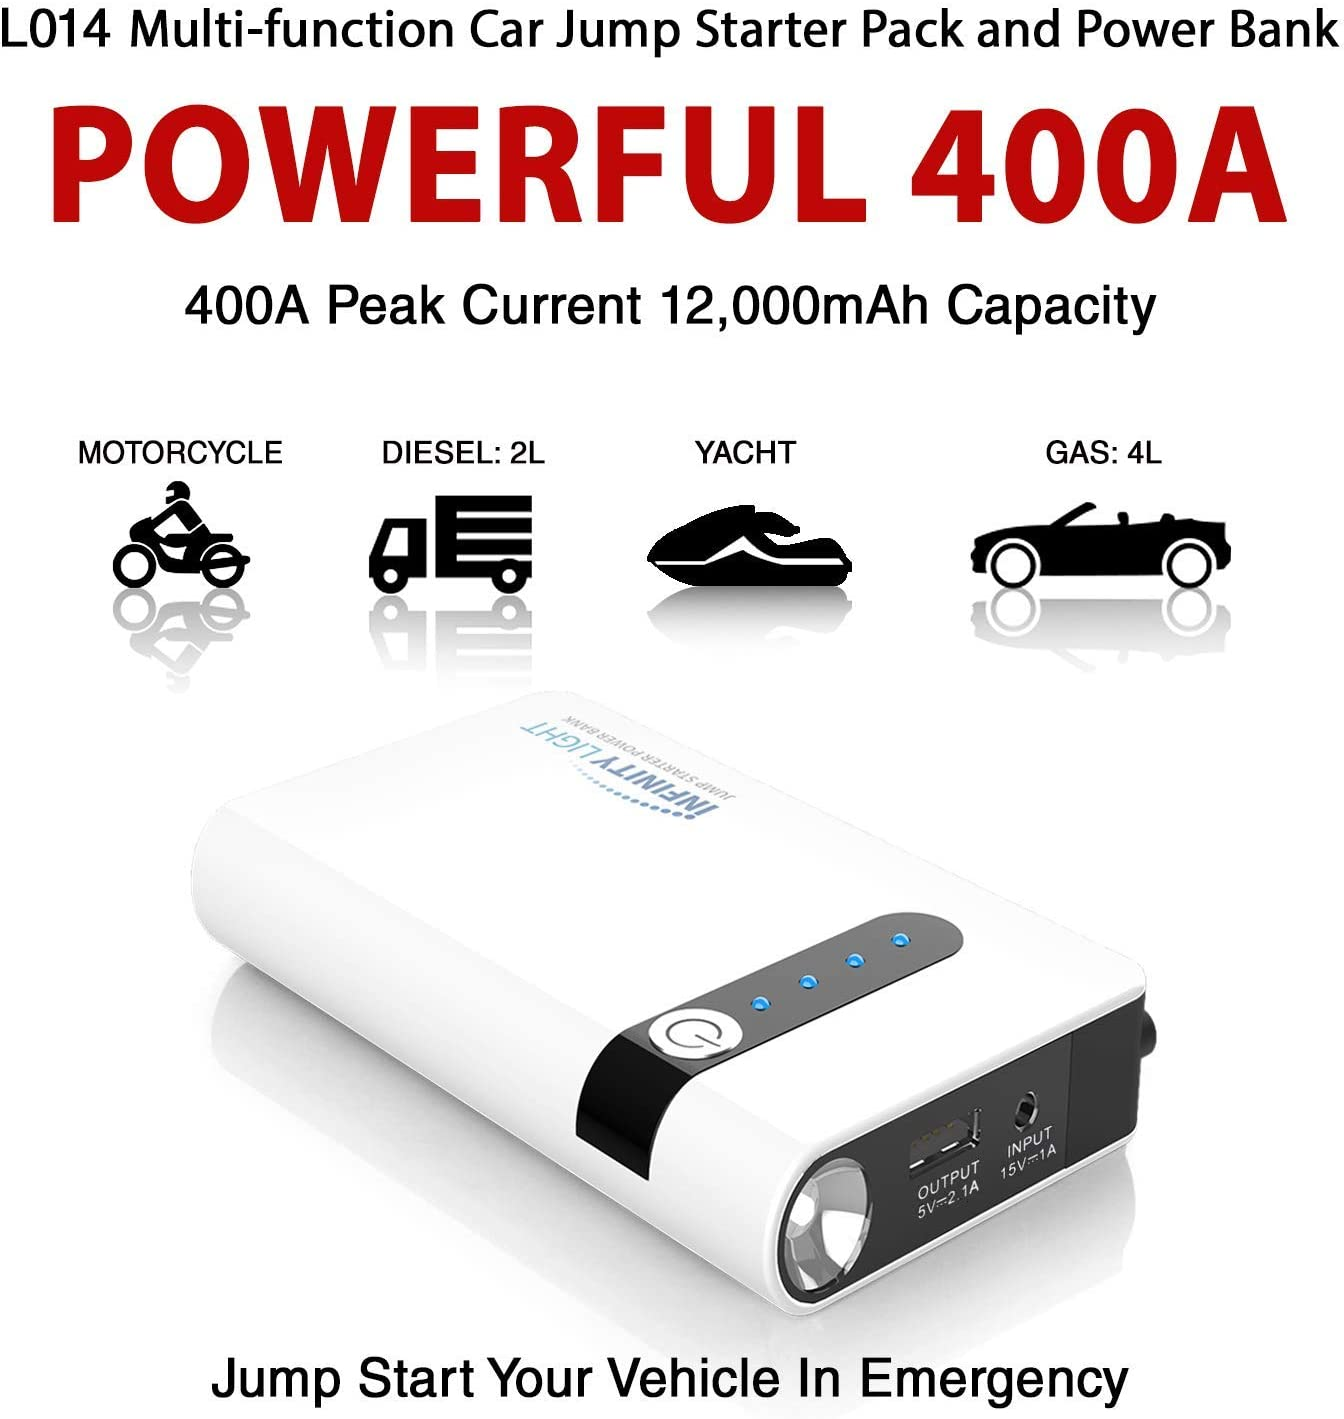 400A//12,000mAh 12V Portable Jump Starter Lithium-Ion Battery Charger Box For Car,Motorcycle,Truck,Boat,Diesel To Start and Charge Compact Emergency USB Power Bank Auto Booster Power Pack Flashlight